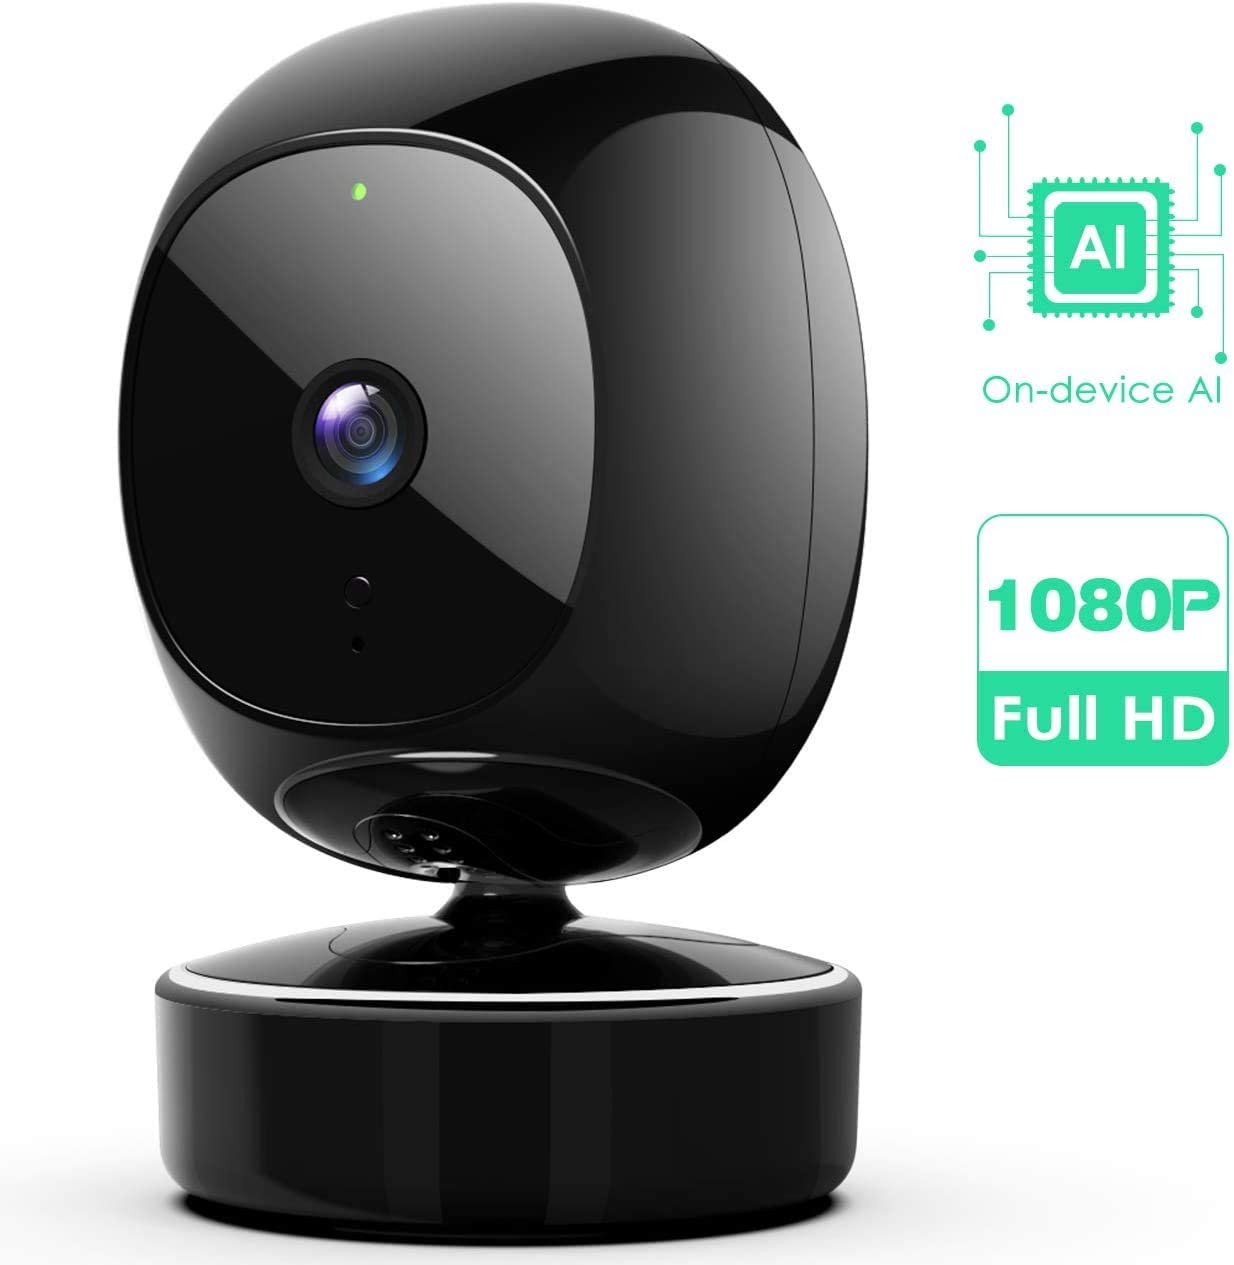 SimCam 1S Home Security Camera AI 7 24 Indoor Security Camera, Facial Recognition, Person Detection Pet Vehicle RECG, 360 Pan Tilt Zoom for Auto-Tracking,No Lag, 2-Way Audio, Works with Alexa